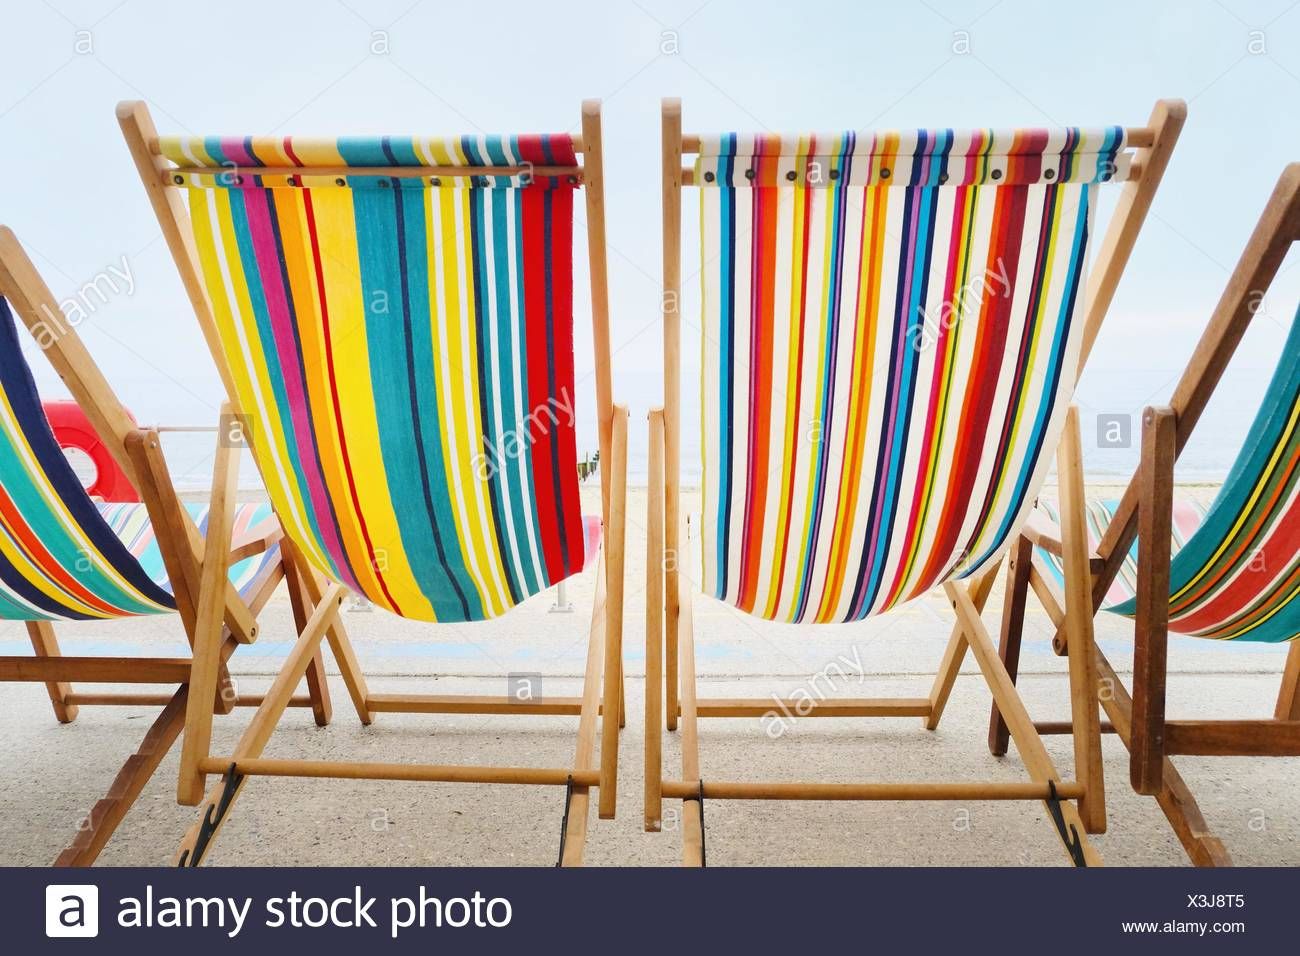 Empty deckchairs in a row - Stock Image